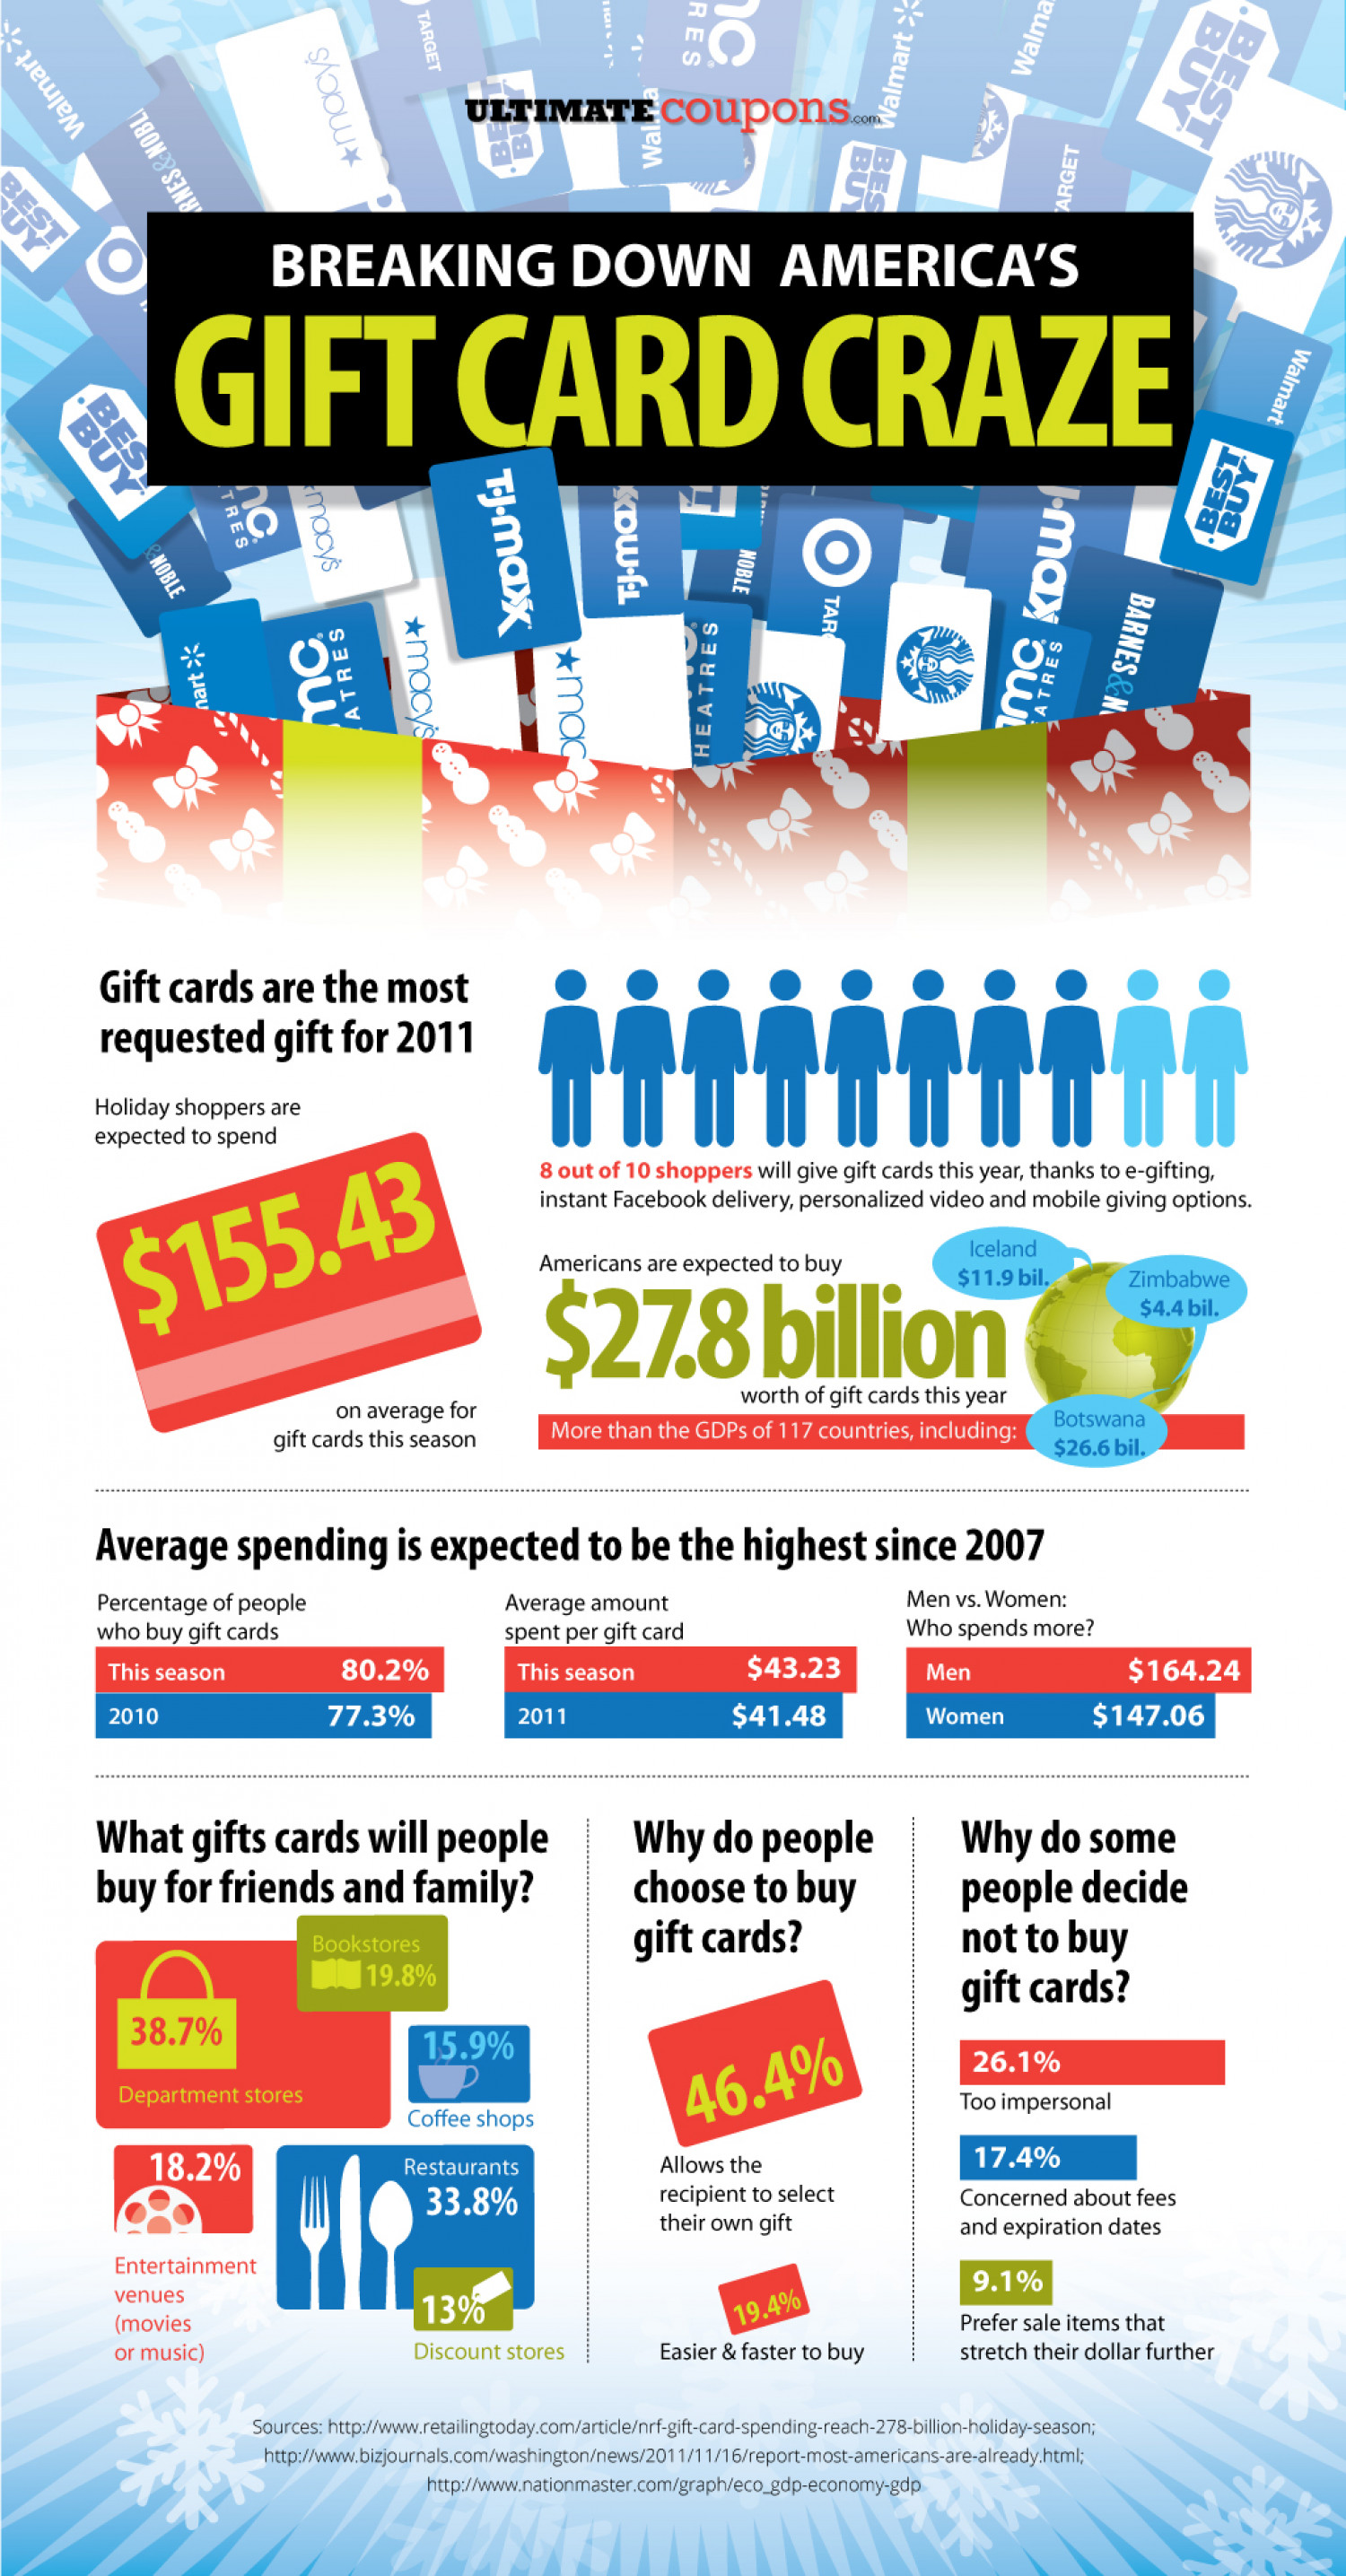 Breaking Down America's Gift Card Craze Infographic